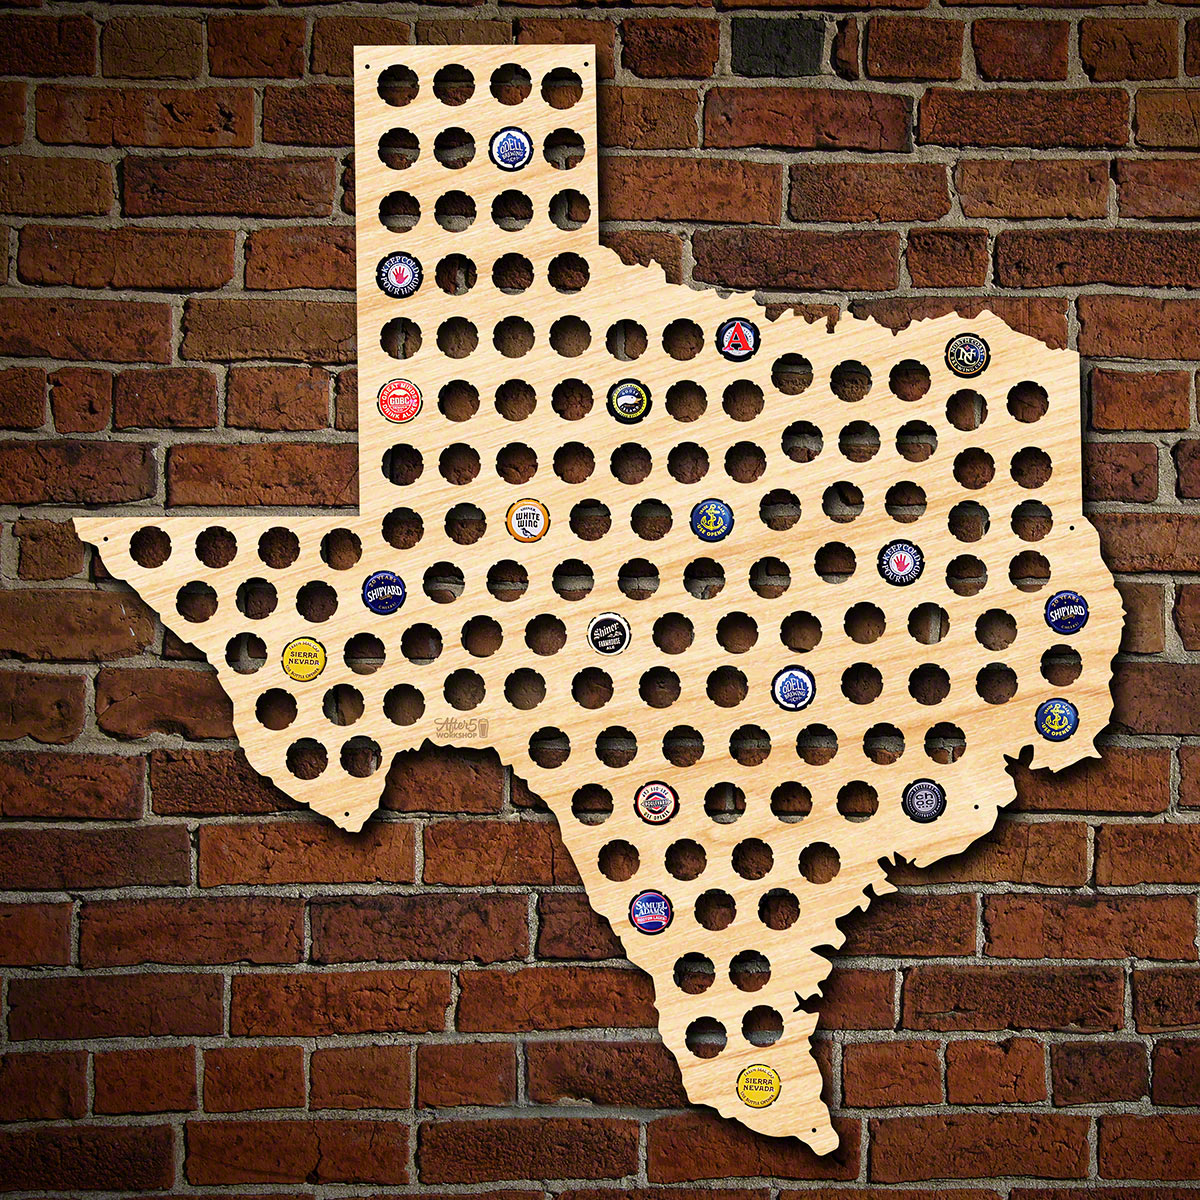 Giant XL Texas Beer Cap Map